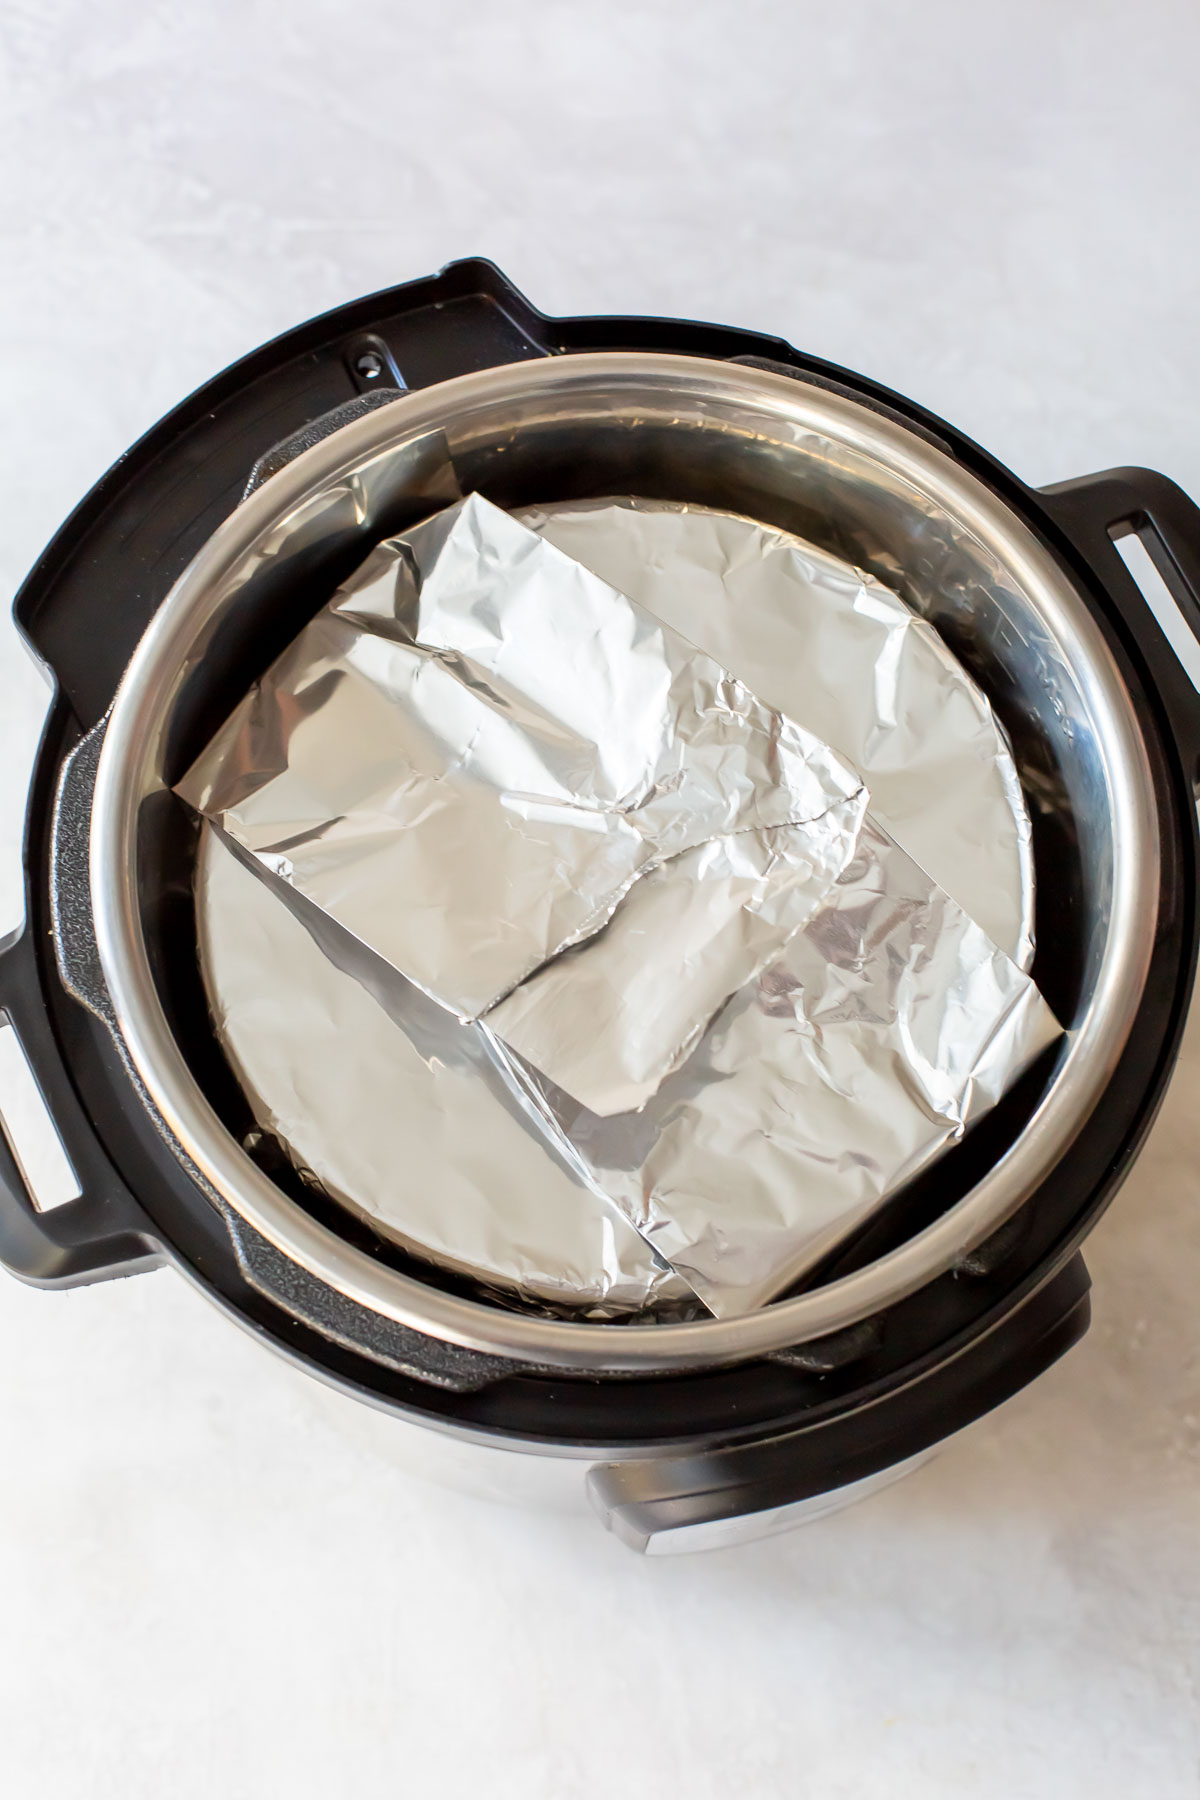 cheesecake covered with foil in instant pot